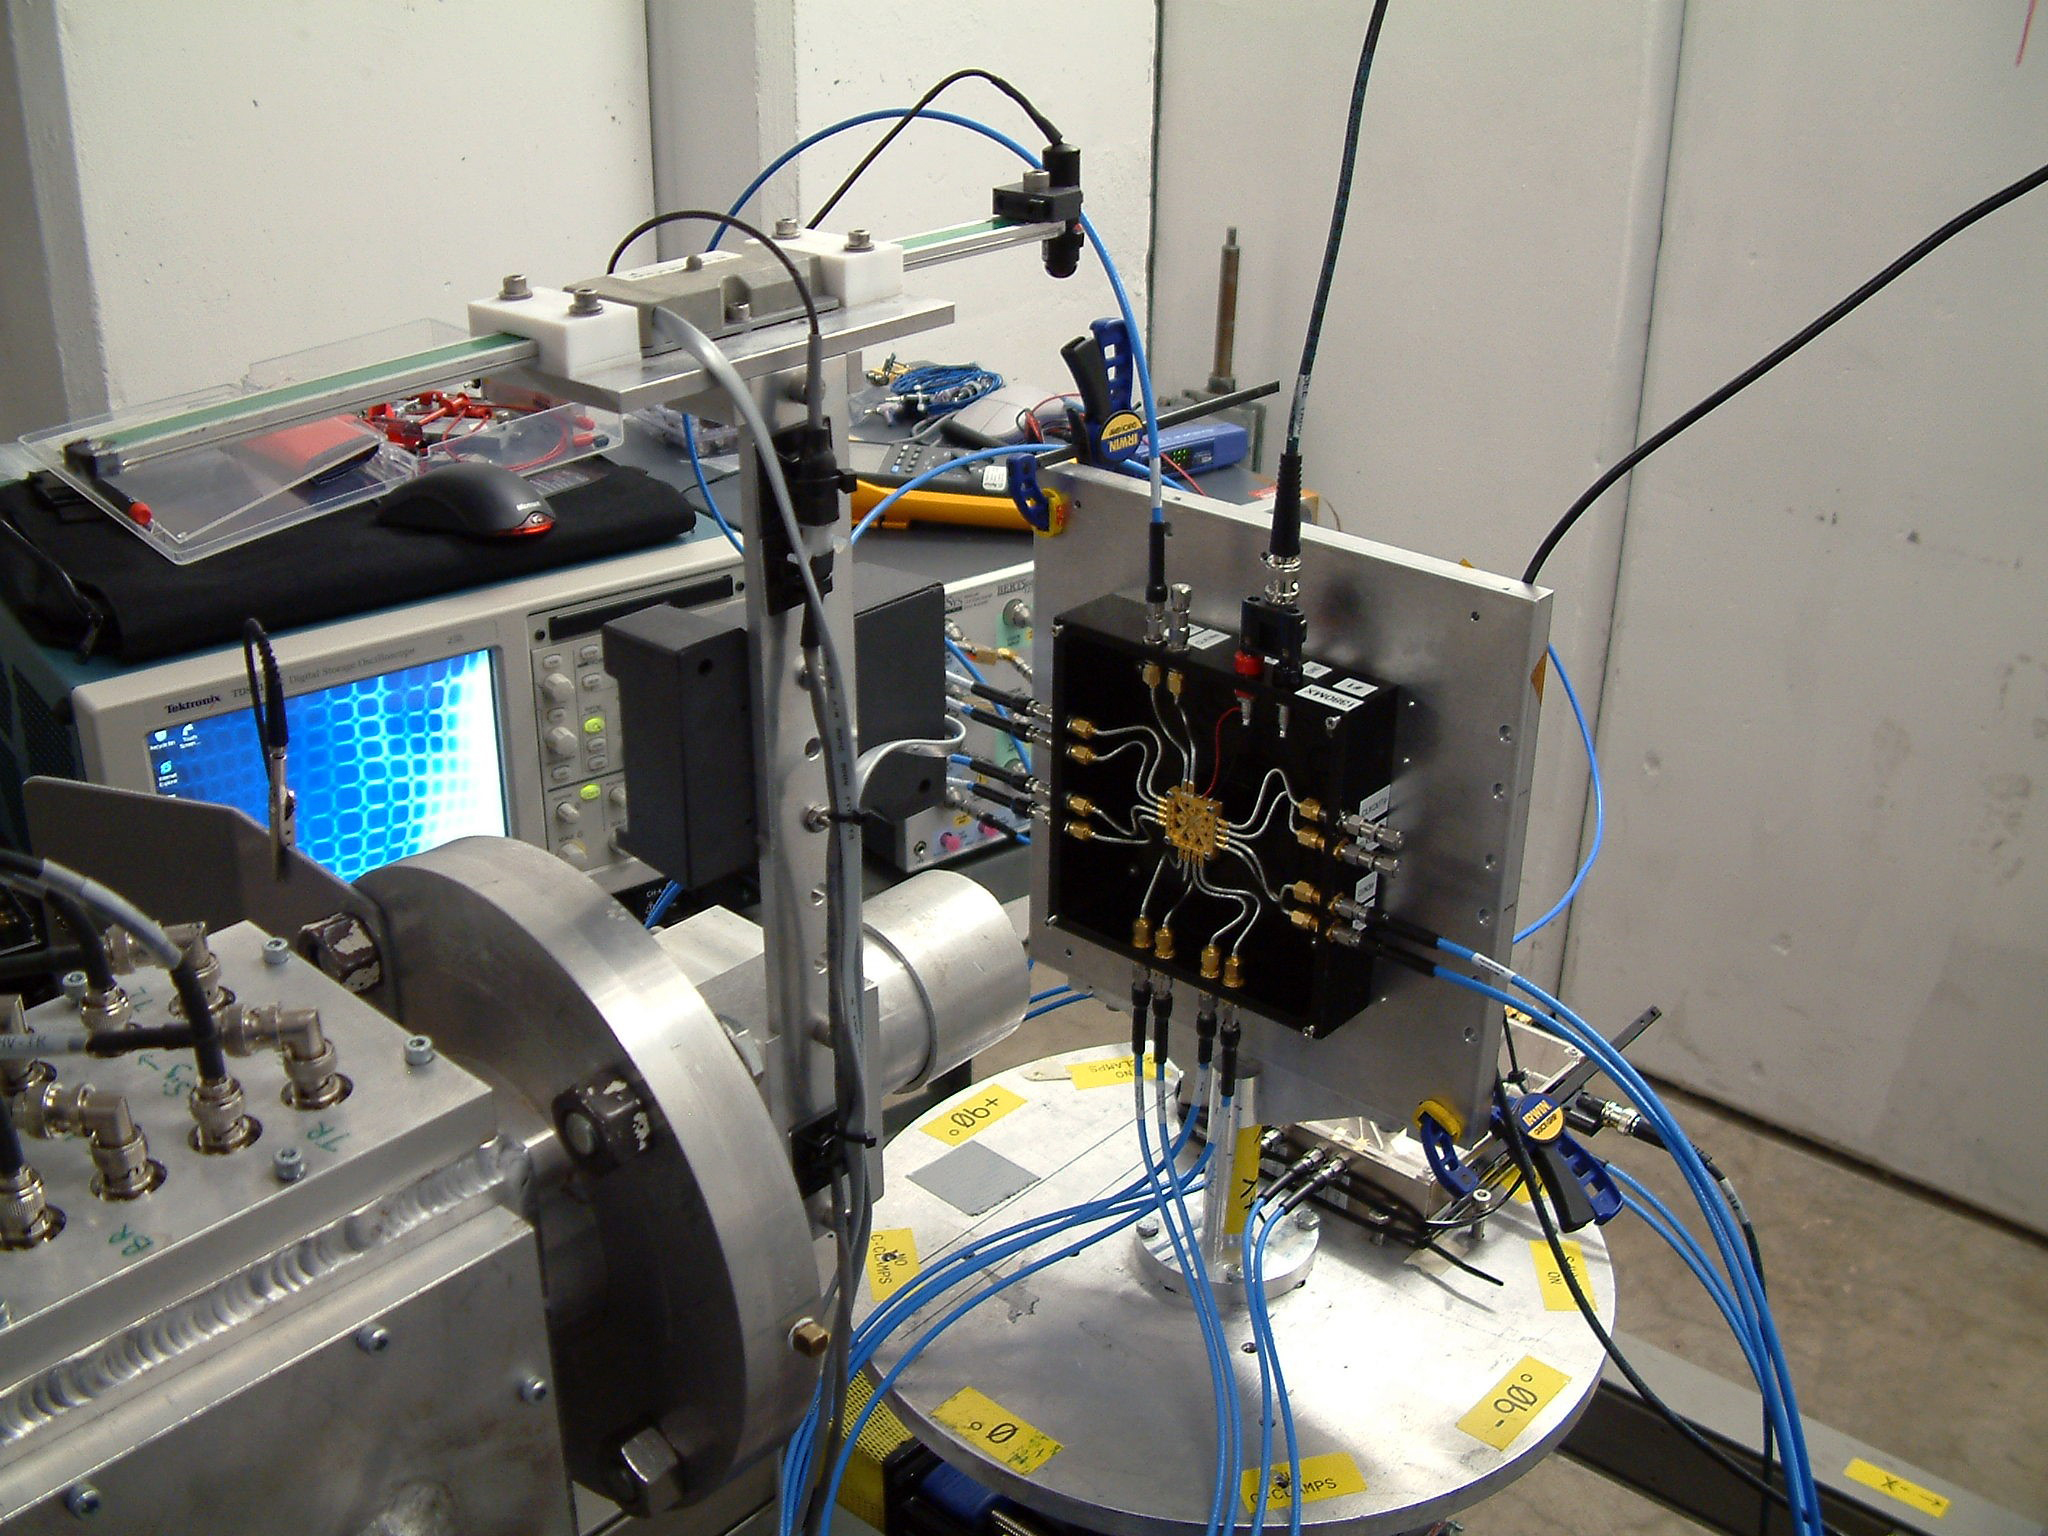 A SpaceX device undergoing testing within the Cyclotron Institute's Radiation Effects Facility